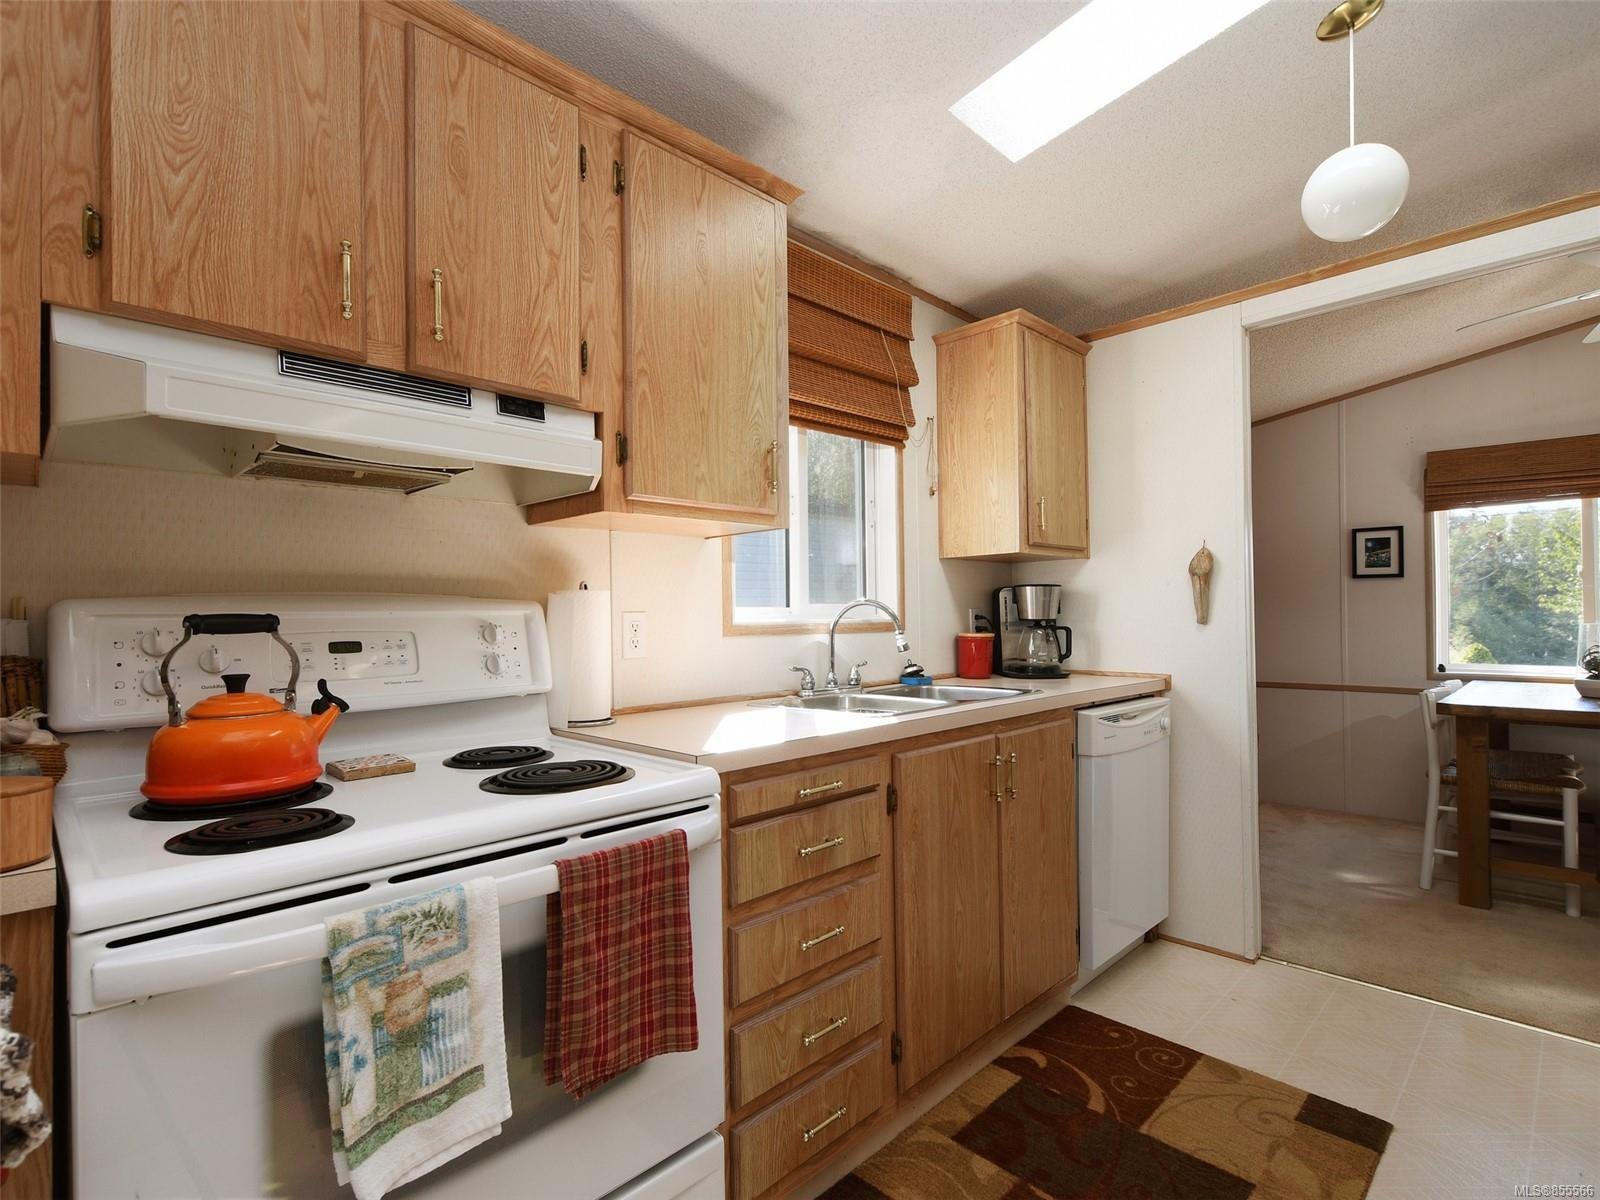 Photo 10: Photos: 28 7021 W Grant Rd in : Sk John Muir Manufactured Home for sale (Sooke)  : MLS®# 855566